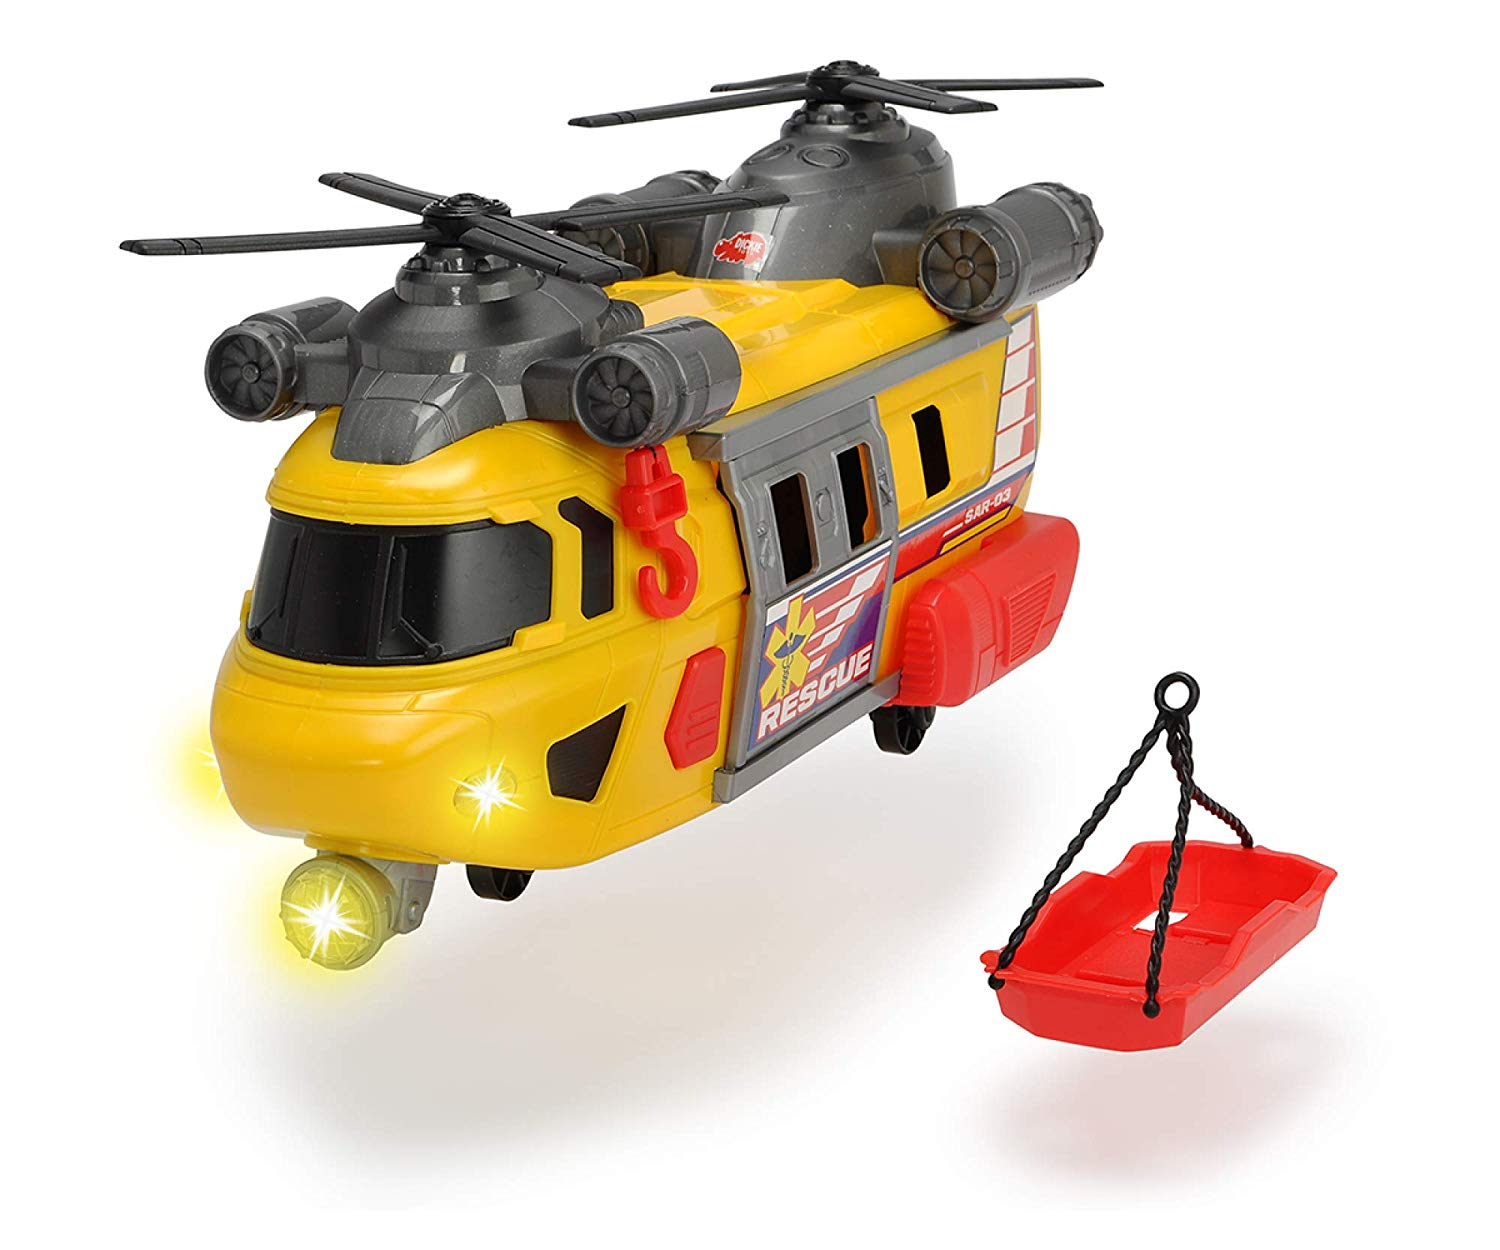 203306004 Trực thăng cứu hộ Rescue Helicopter Dicke Toys 30cm